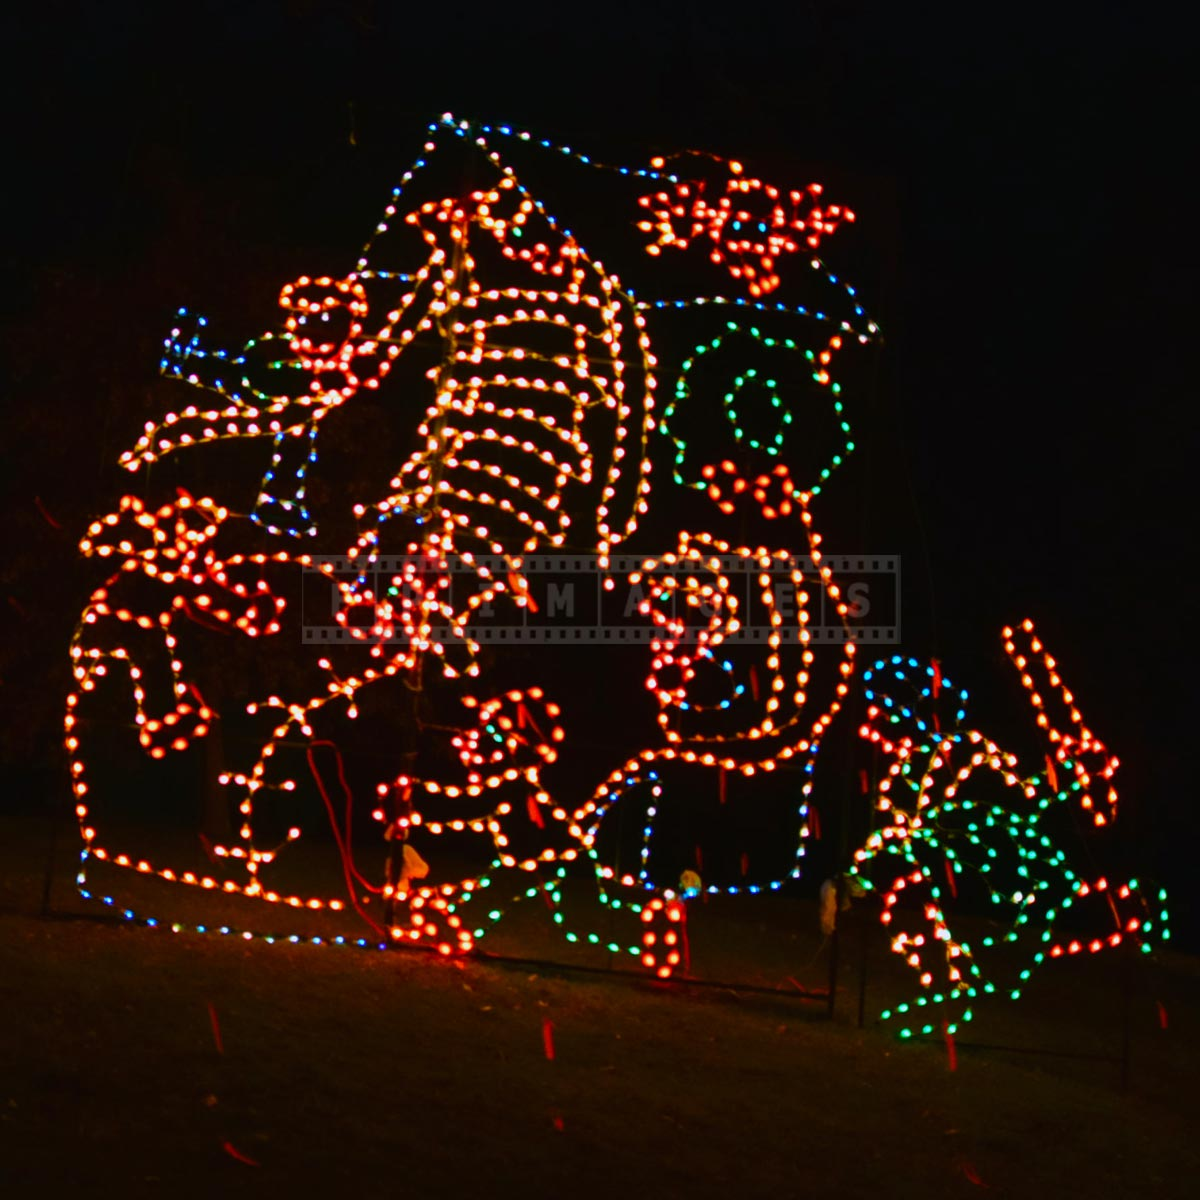 Animated Xmas lights decorations